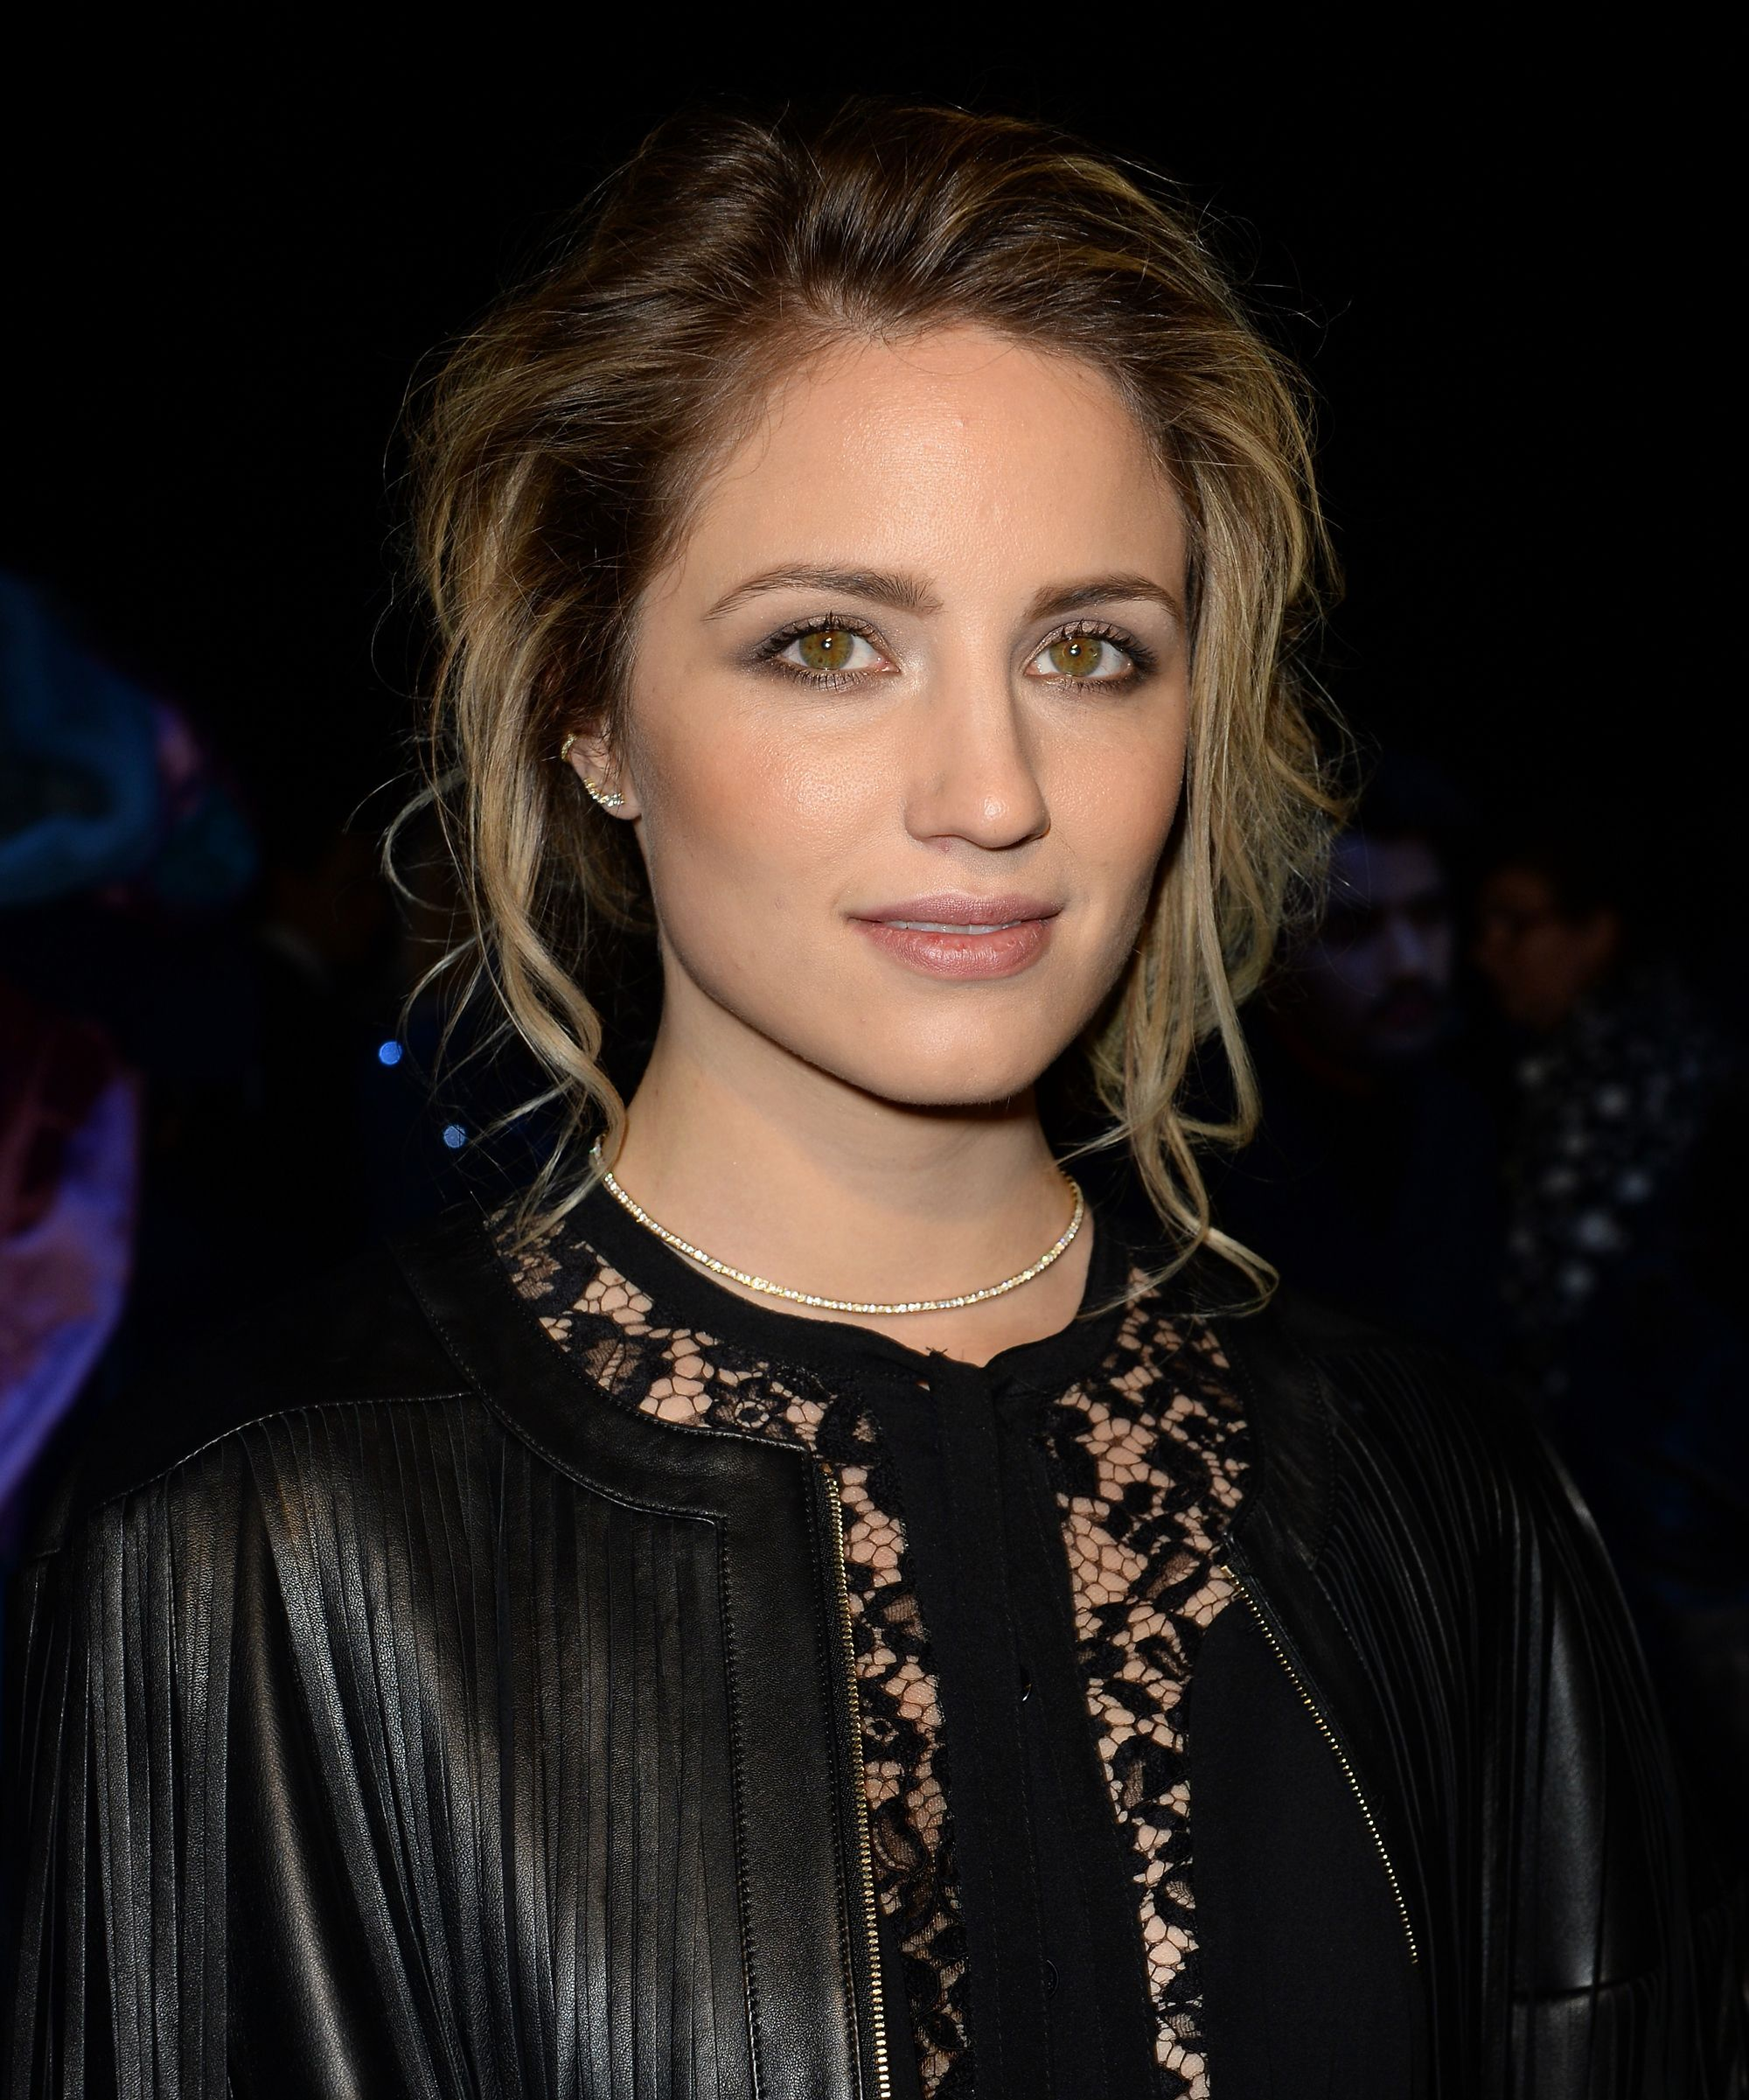 Dianna agron wedding dress  Dianna Agron threw all wedding dress traditions out the window when